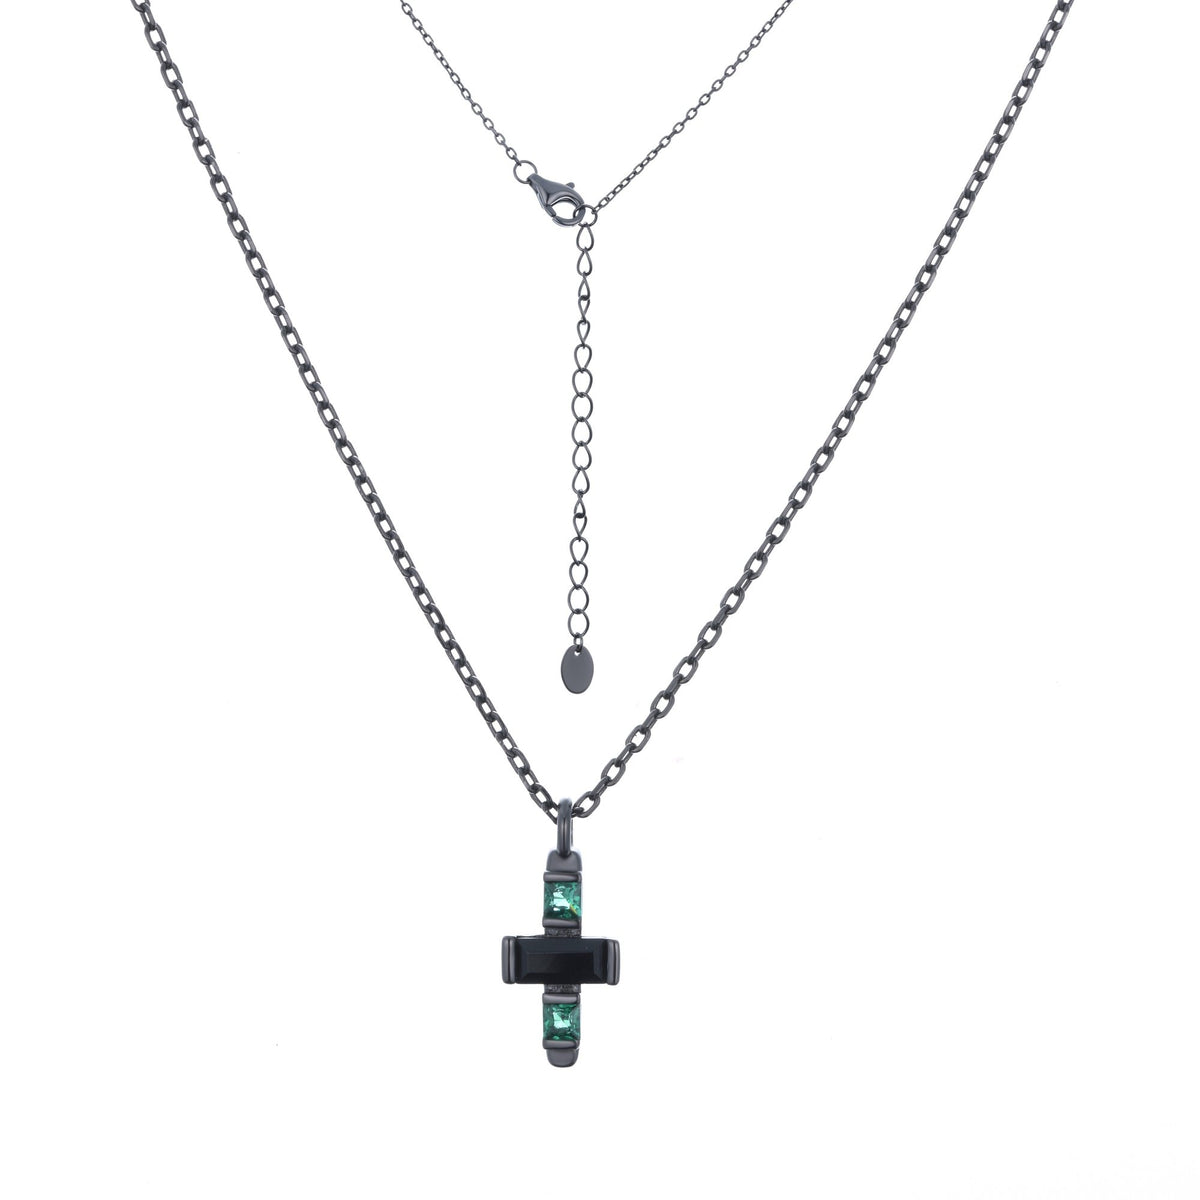 Ferentina | Banoffee Necklace | 925 Silver | Black & Green CZ | Black Rhodium Plated